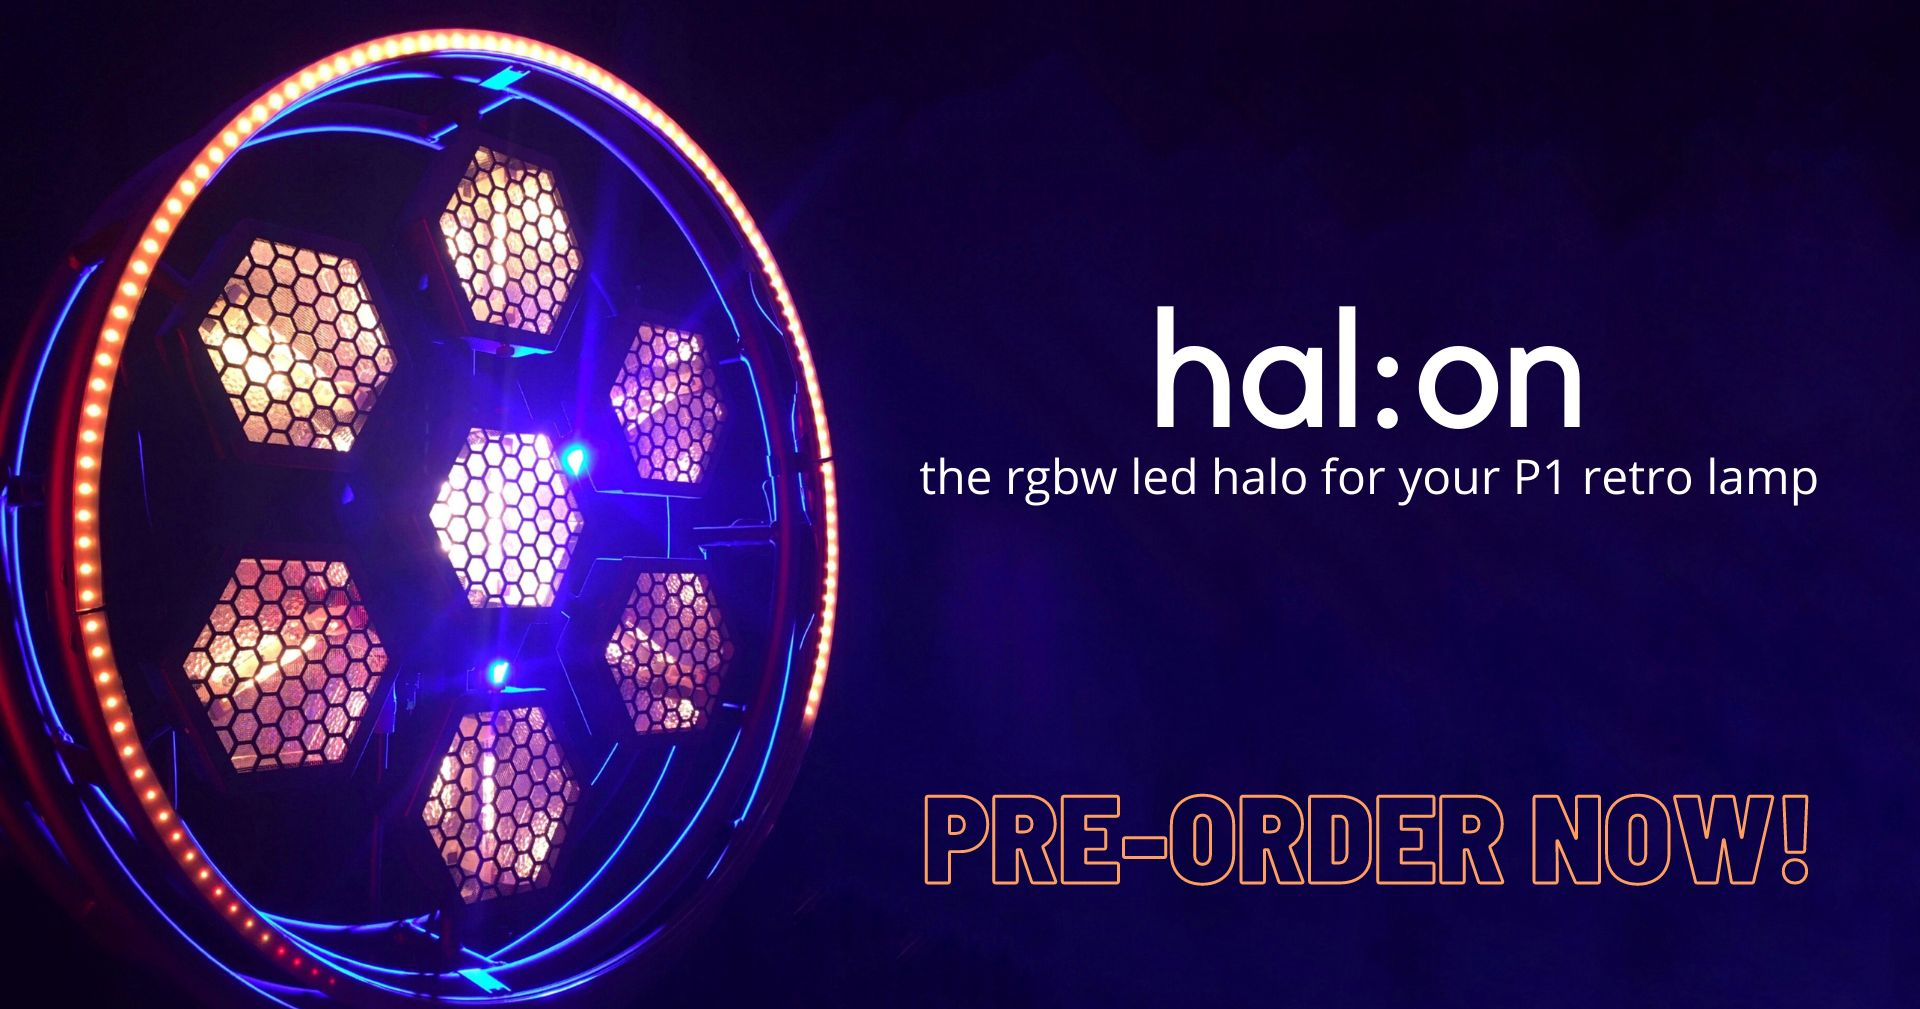 hal:on available for pre-order